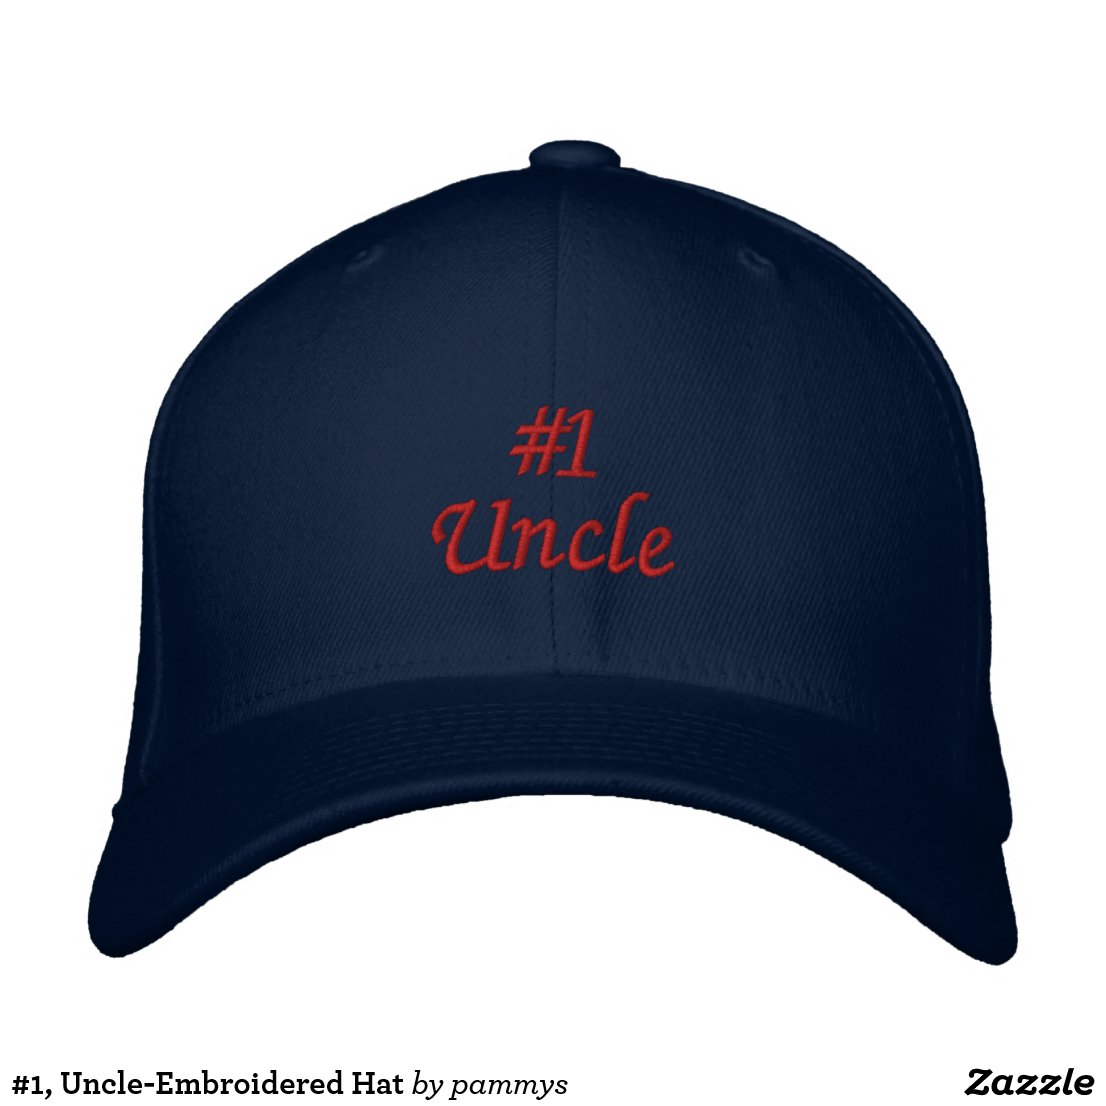 #1, Uncle-Embroidered Hat